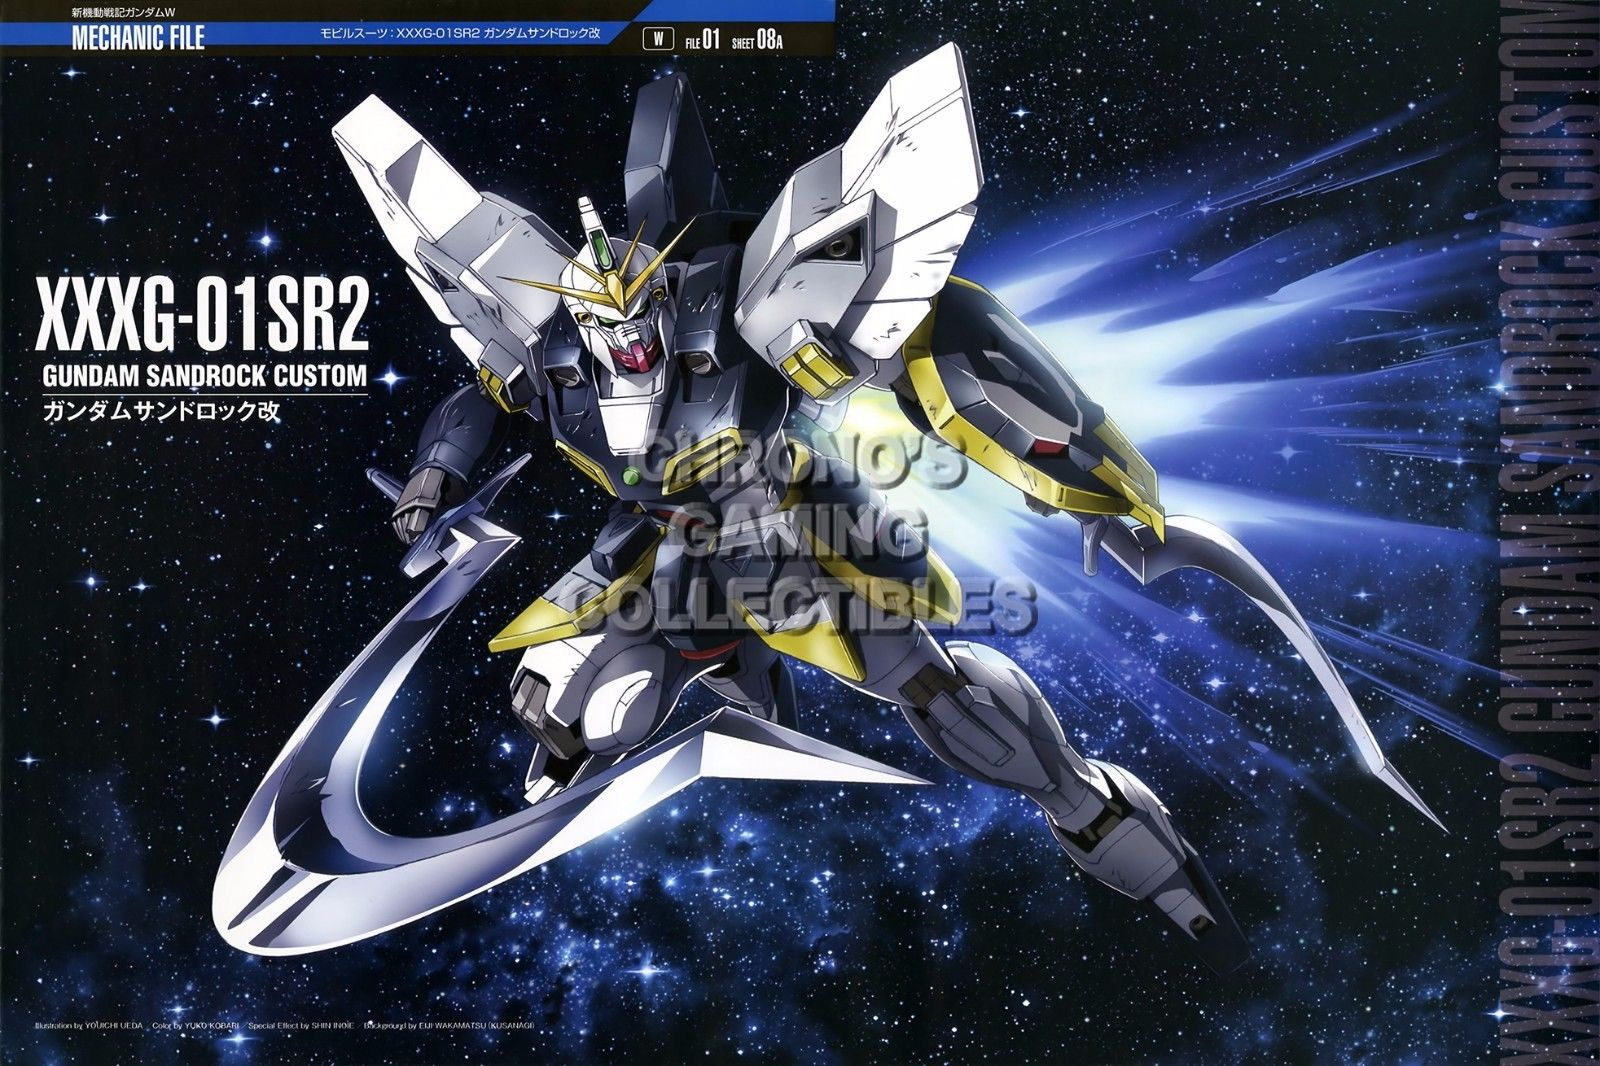 123103 Mobile Suit Gundam Wing Anime Decor WALL PRINT POSTER AU